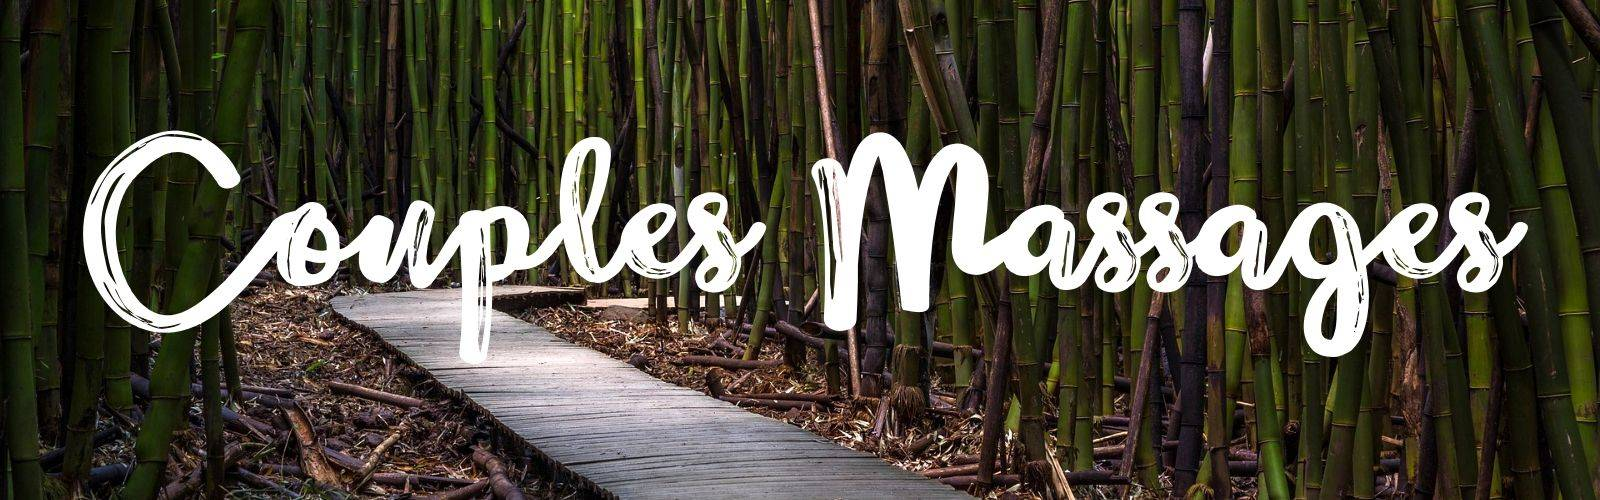 Couples Massages in Hot Springs, AR | Thai-Me Spa | Two Locations in Hot Springs